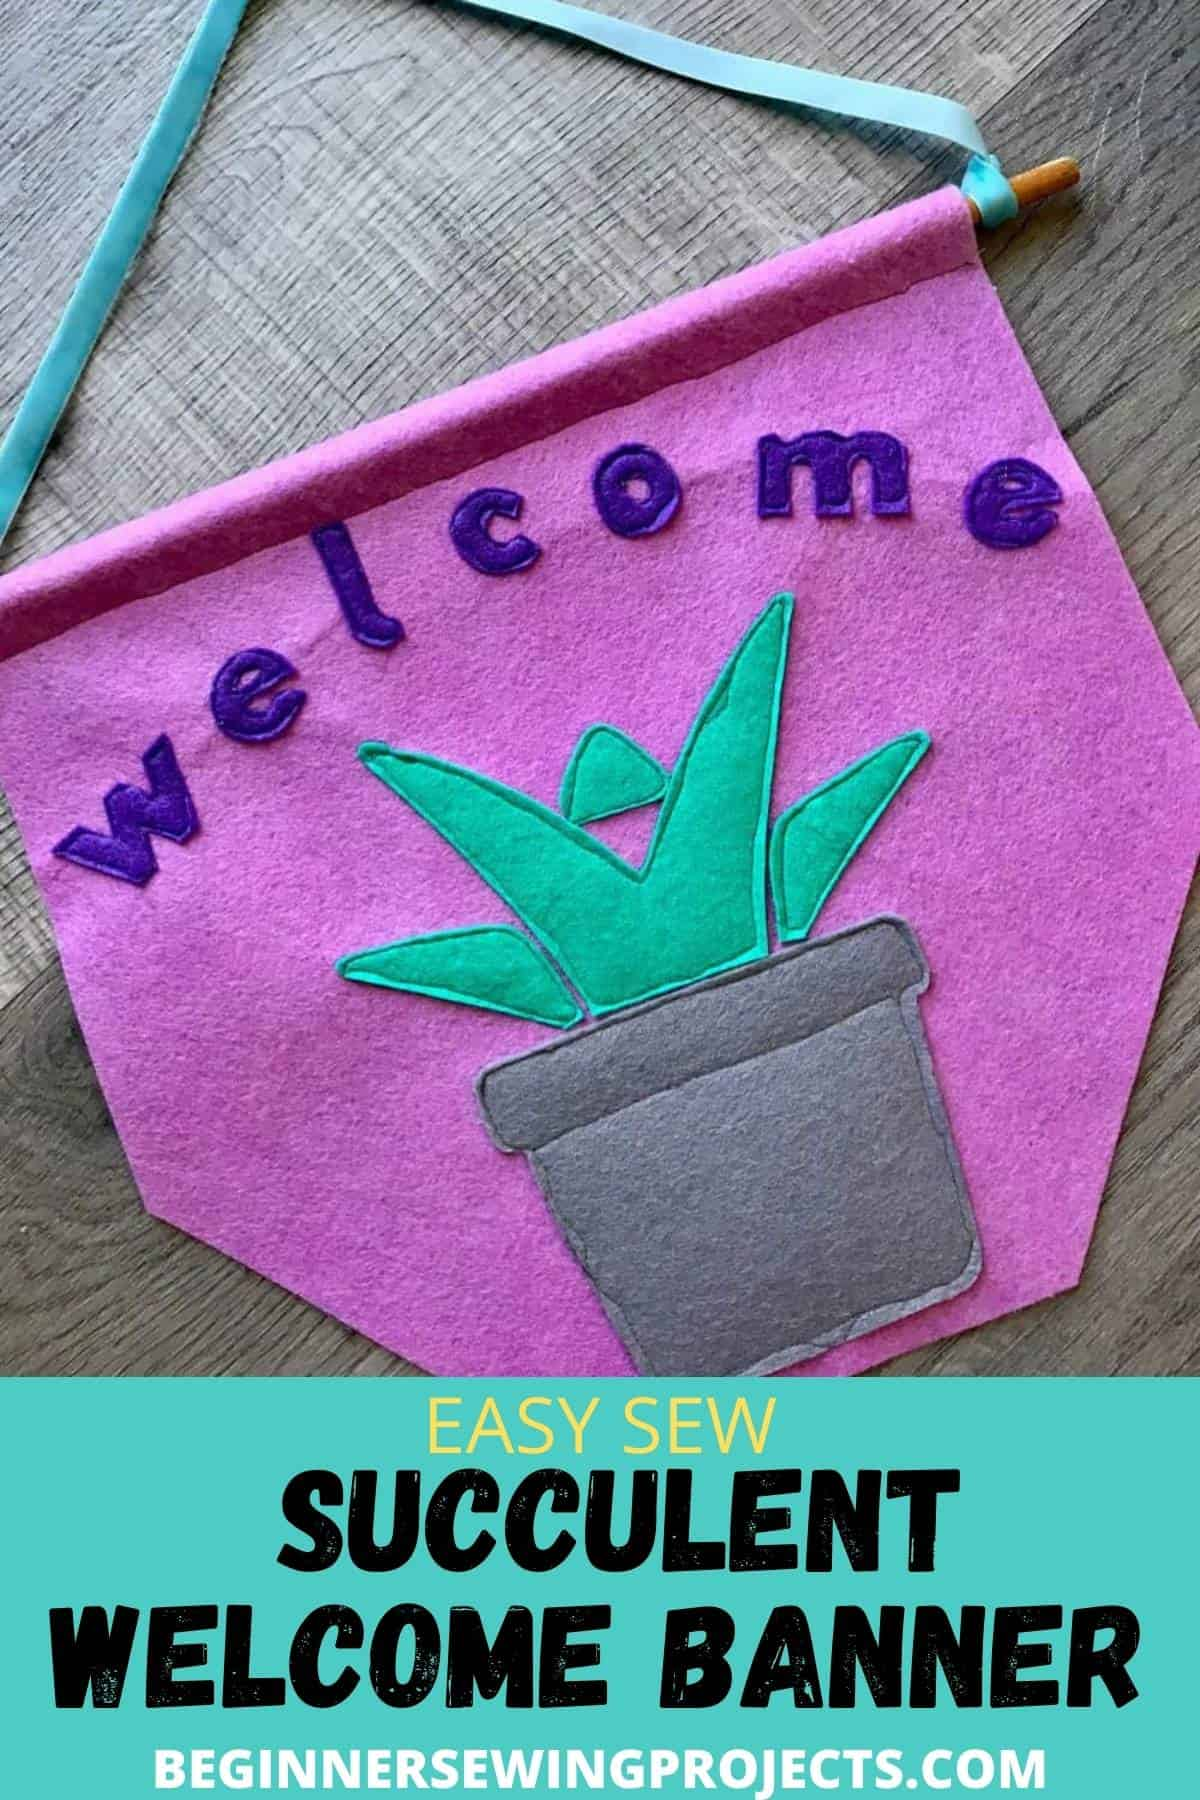 Easy Sew Succulent Welcome Banner